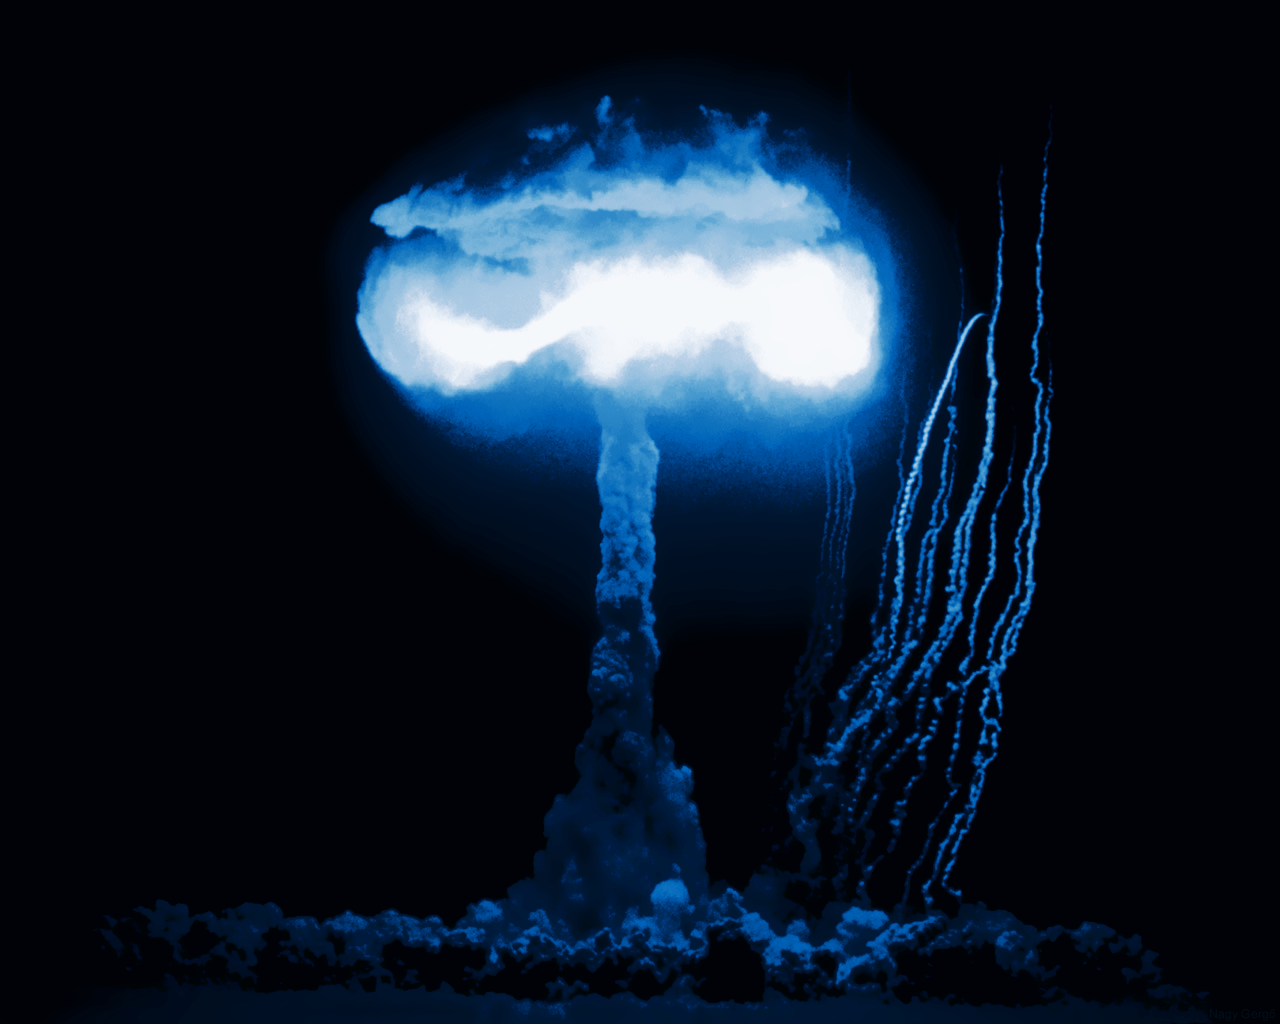 hd wallpapers atomic explosion - photo #41